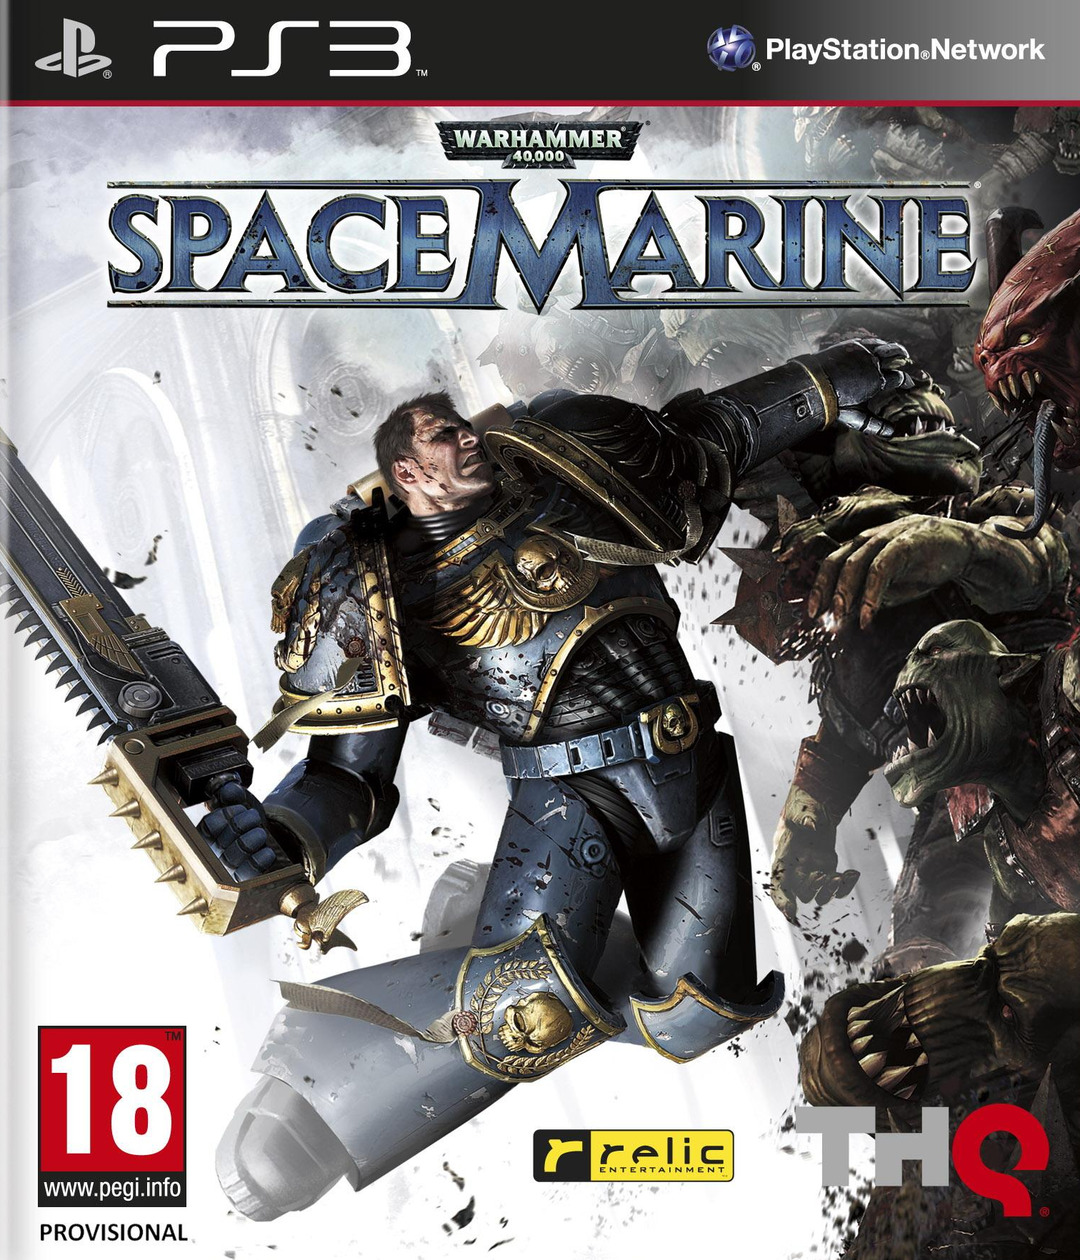 [MULTI] Warhammer 40000 Space Marine REPACK PS3-iCON